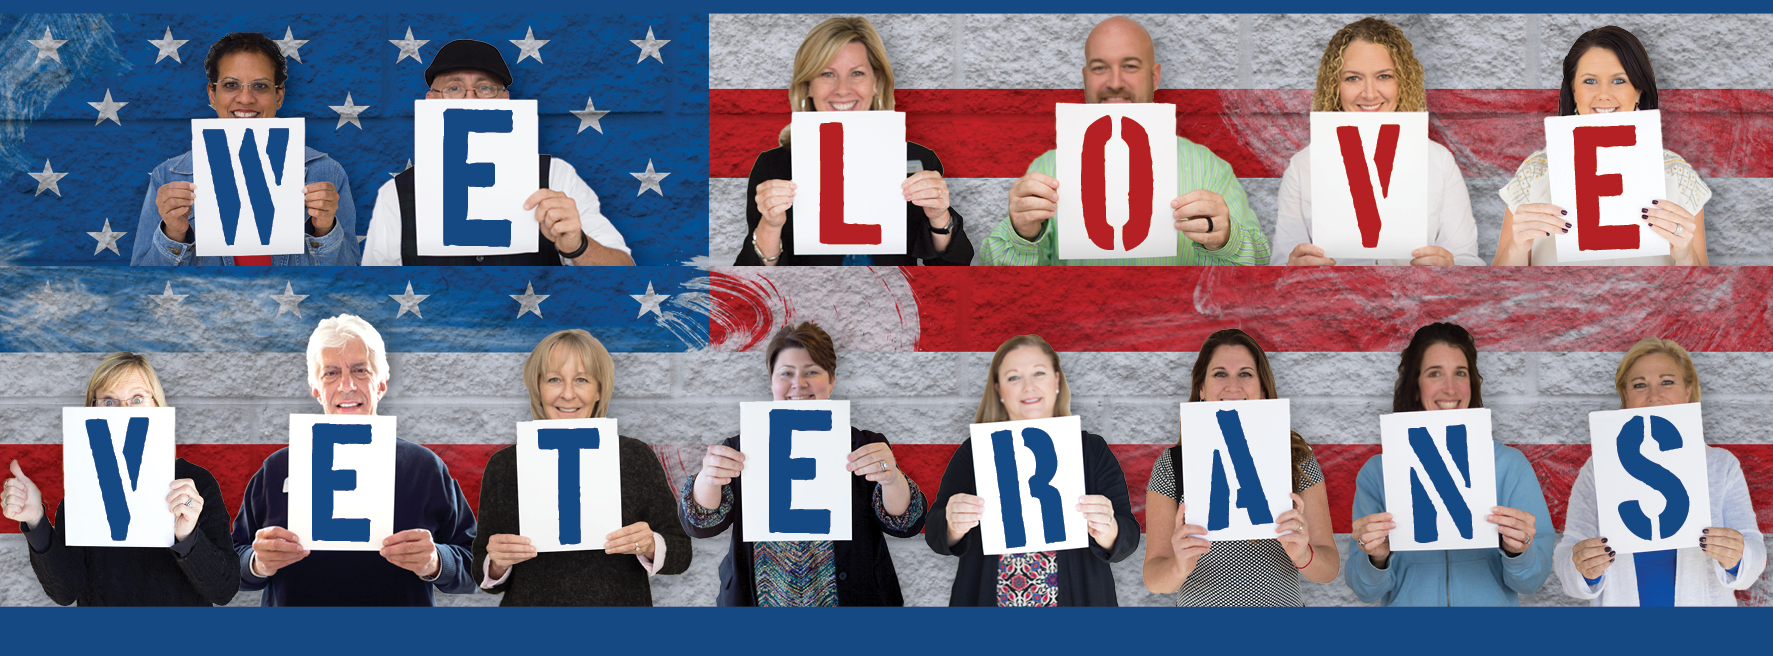 We Love Veterans 2014 AT HOMES REALTY